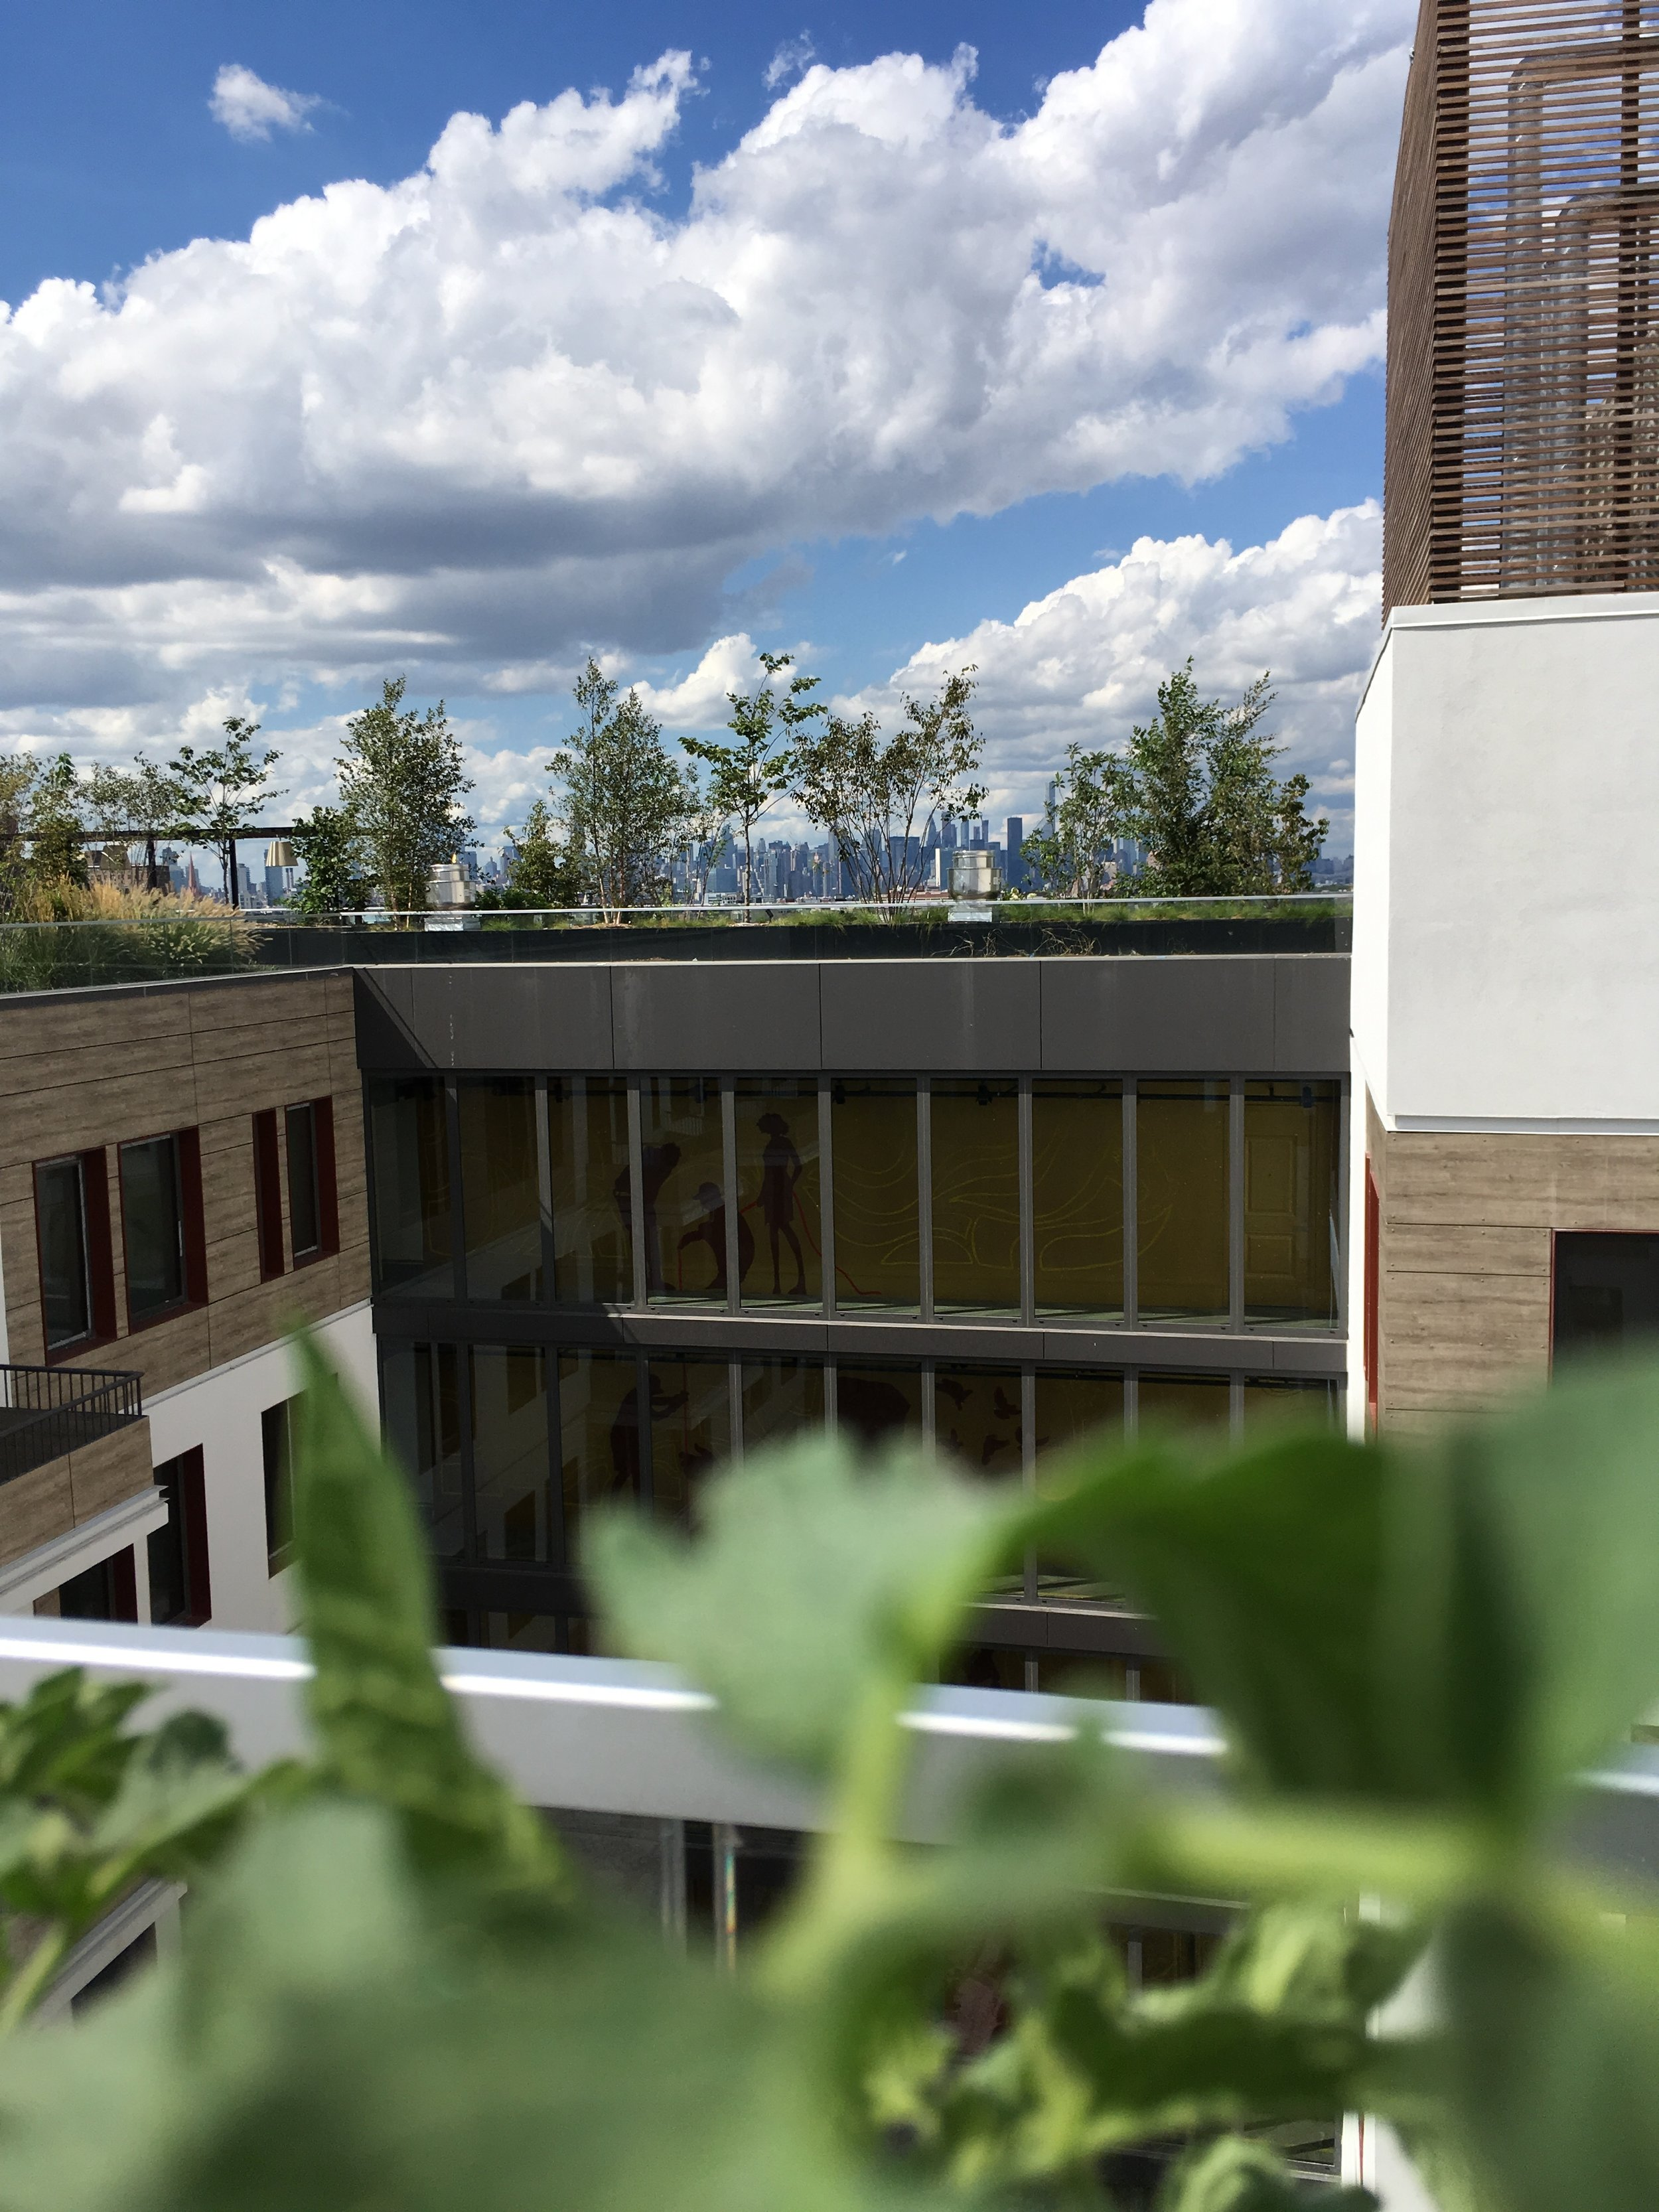 The Denizen - First residential building in NYC to have a rooftop Farm Amenity operated by Green Food Solutions.